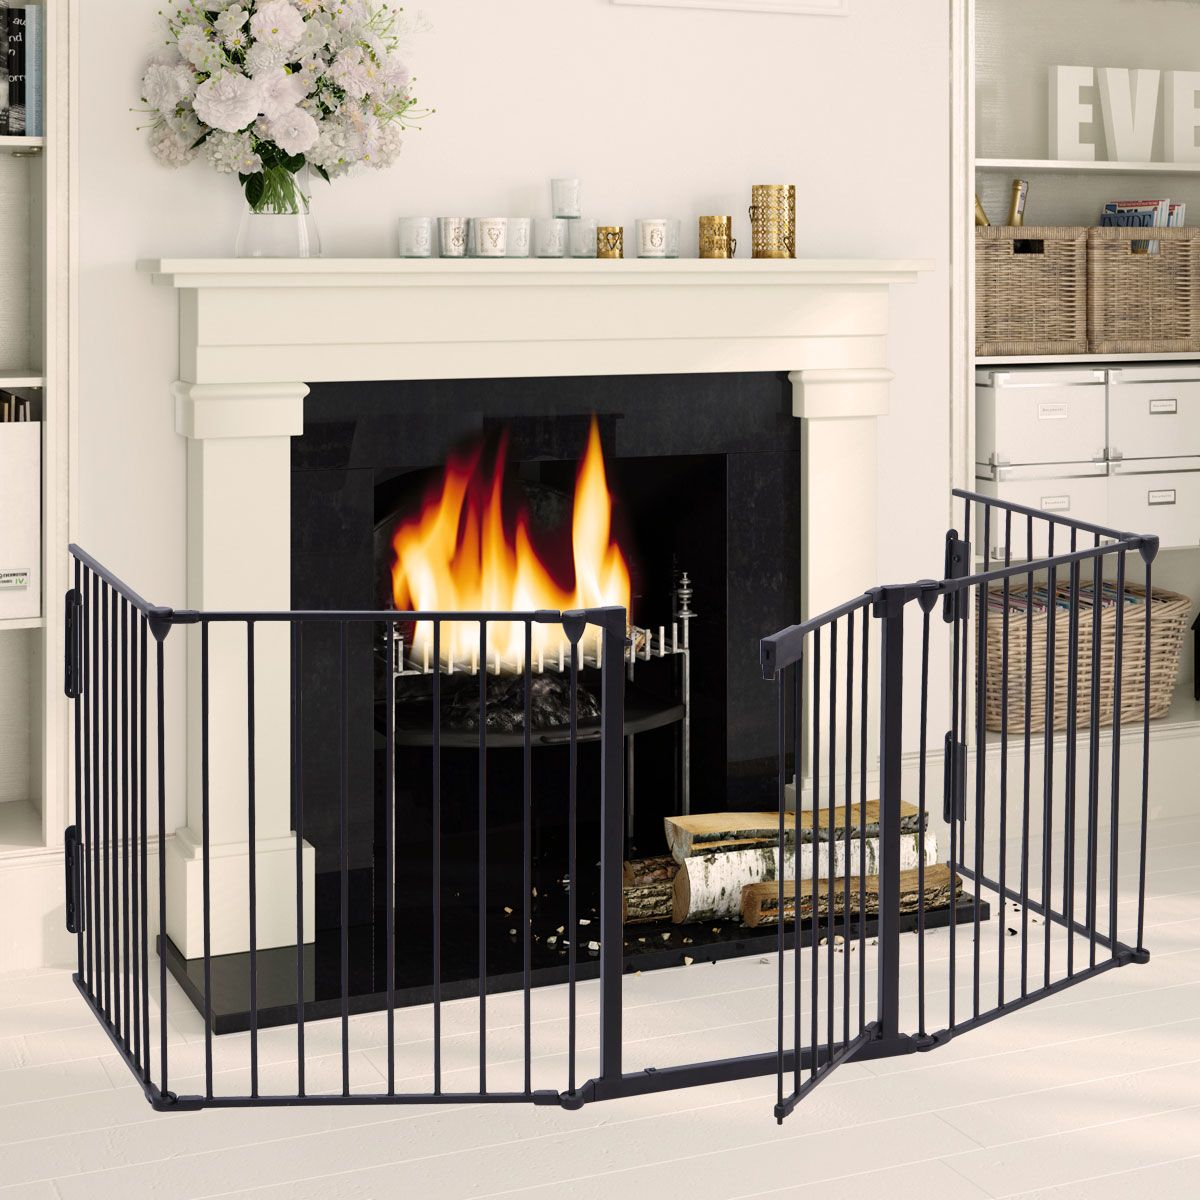 Jaxpety Fireplace Fence Baby Safety Fence 5 Panel Hearth